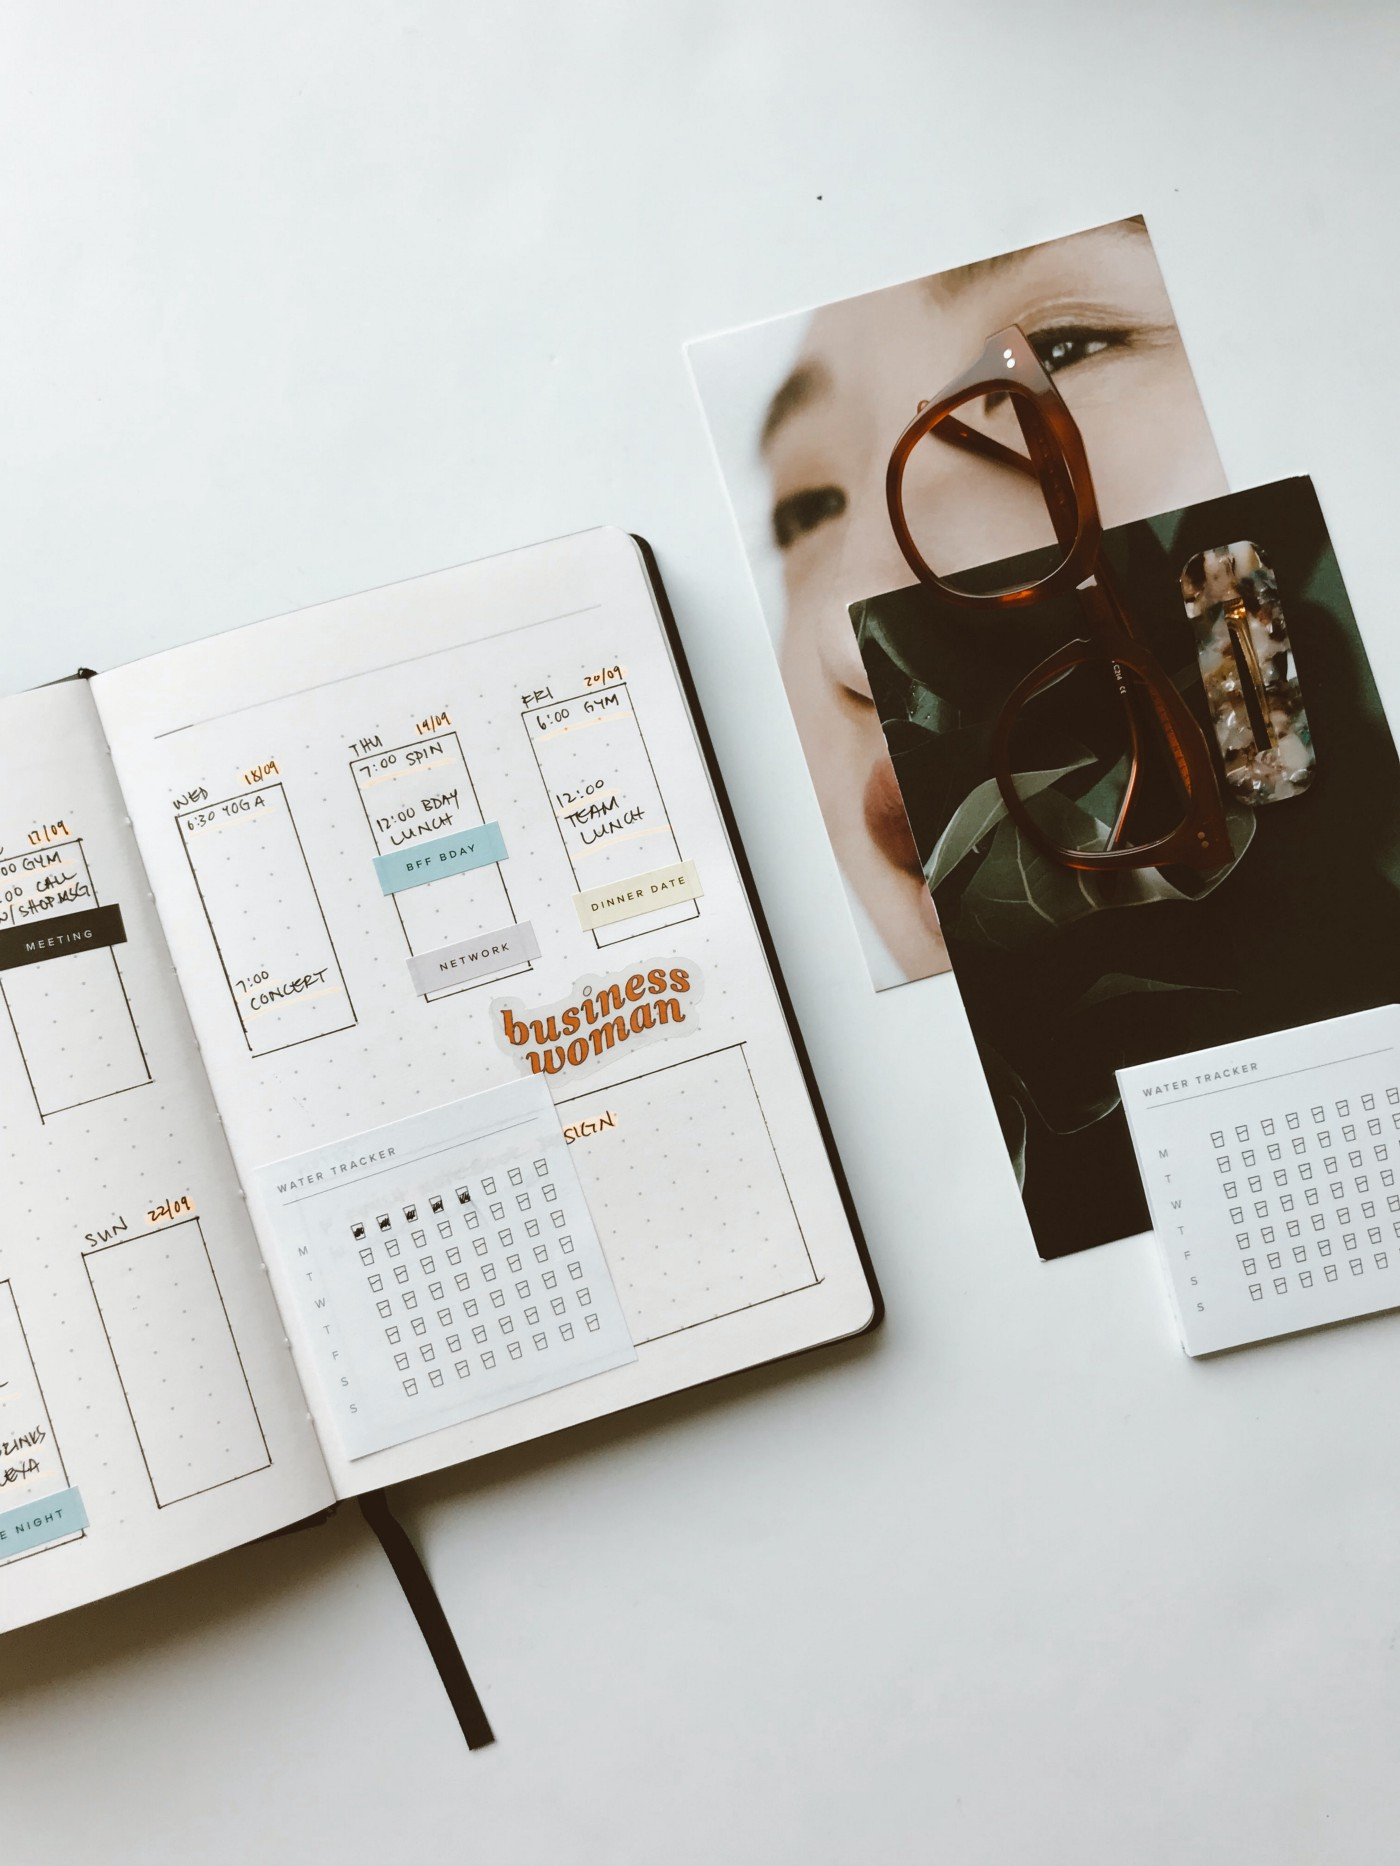 Image of an open planner, calendar, glasses & workspace.